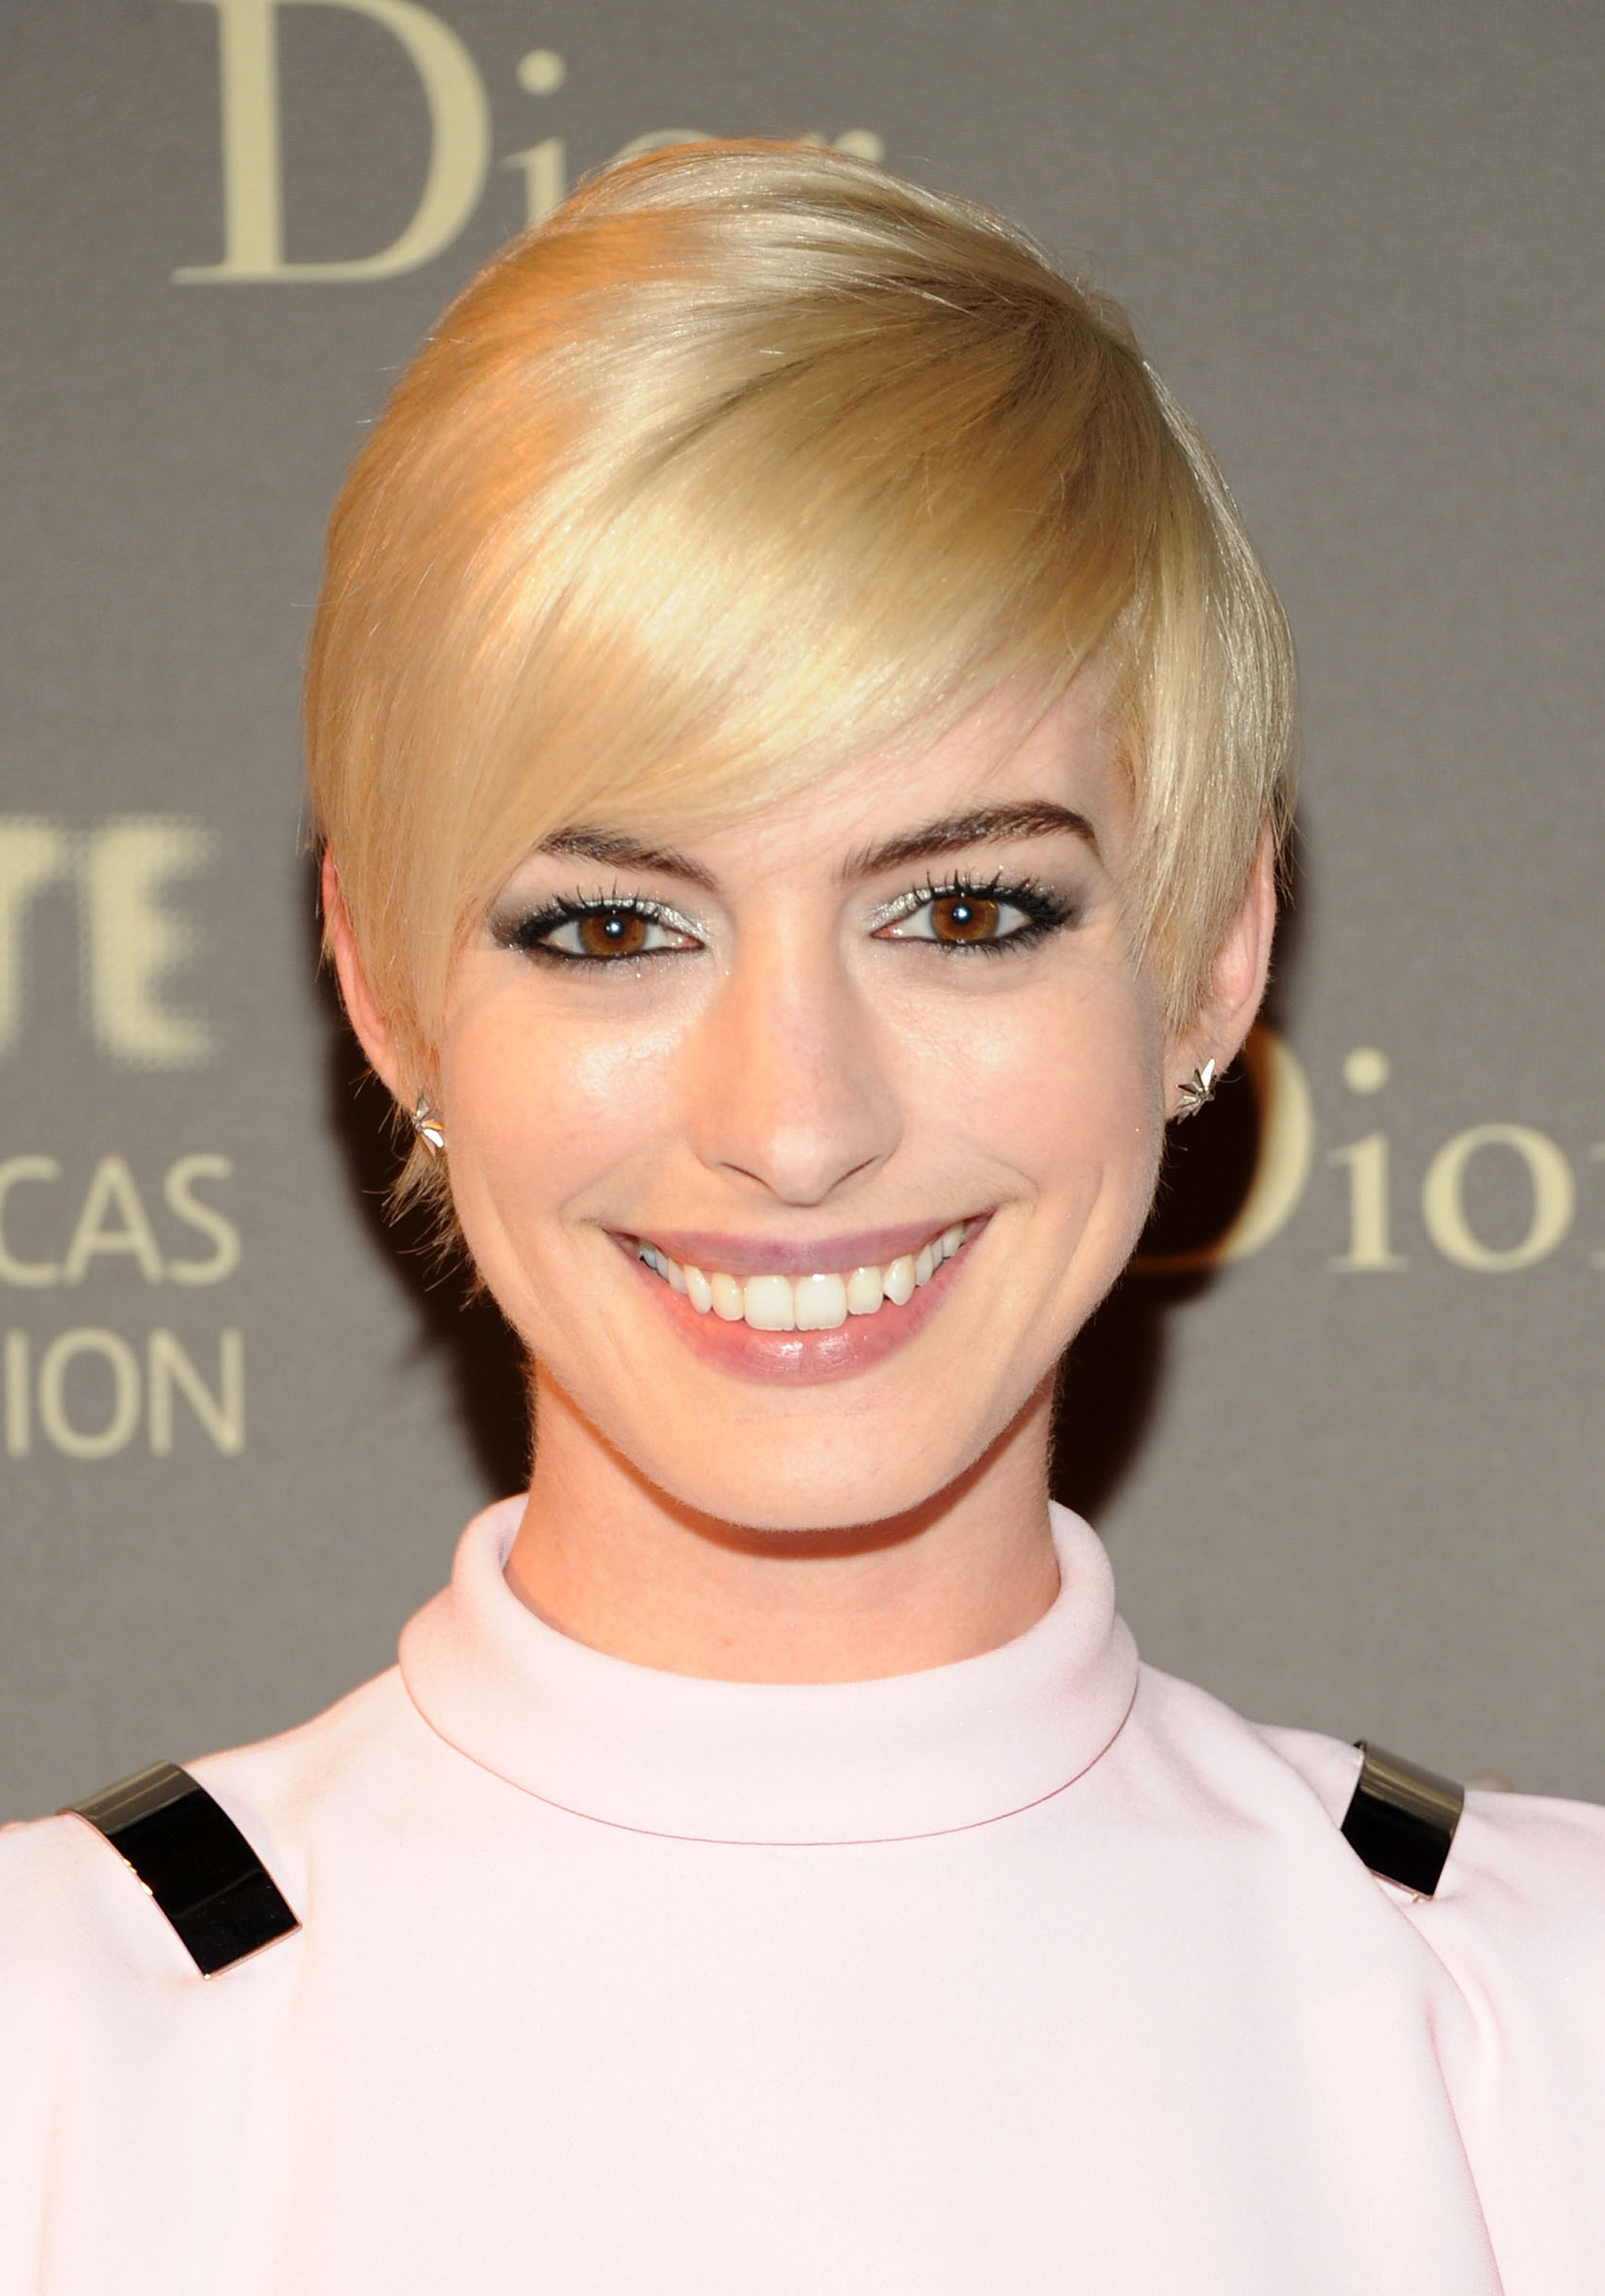 Amazing 27 Short Hairstyles For Women How To Style Short Haircuts Short Hairstyles Gunalazisus